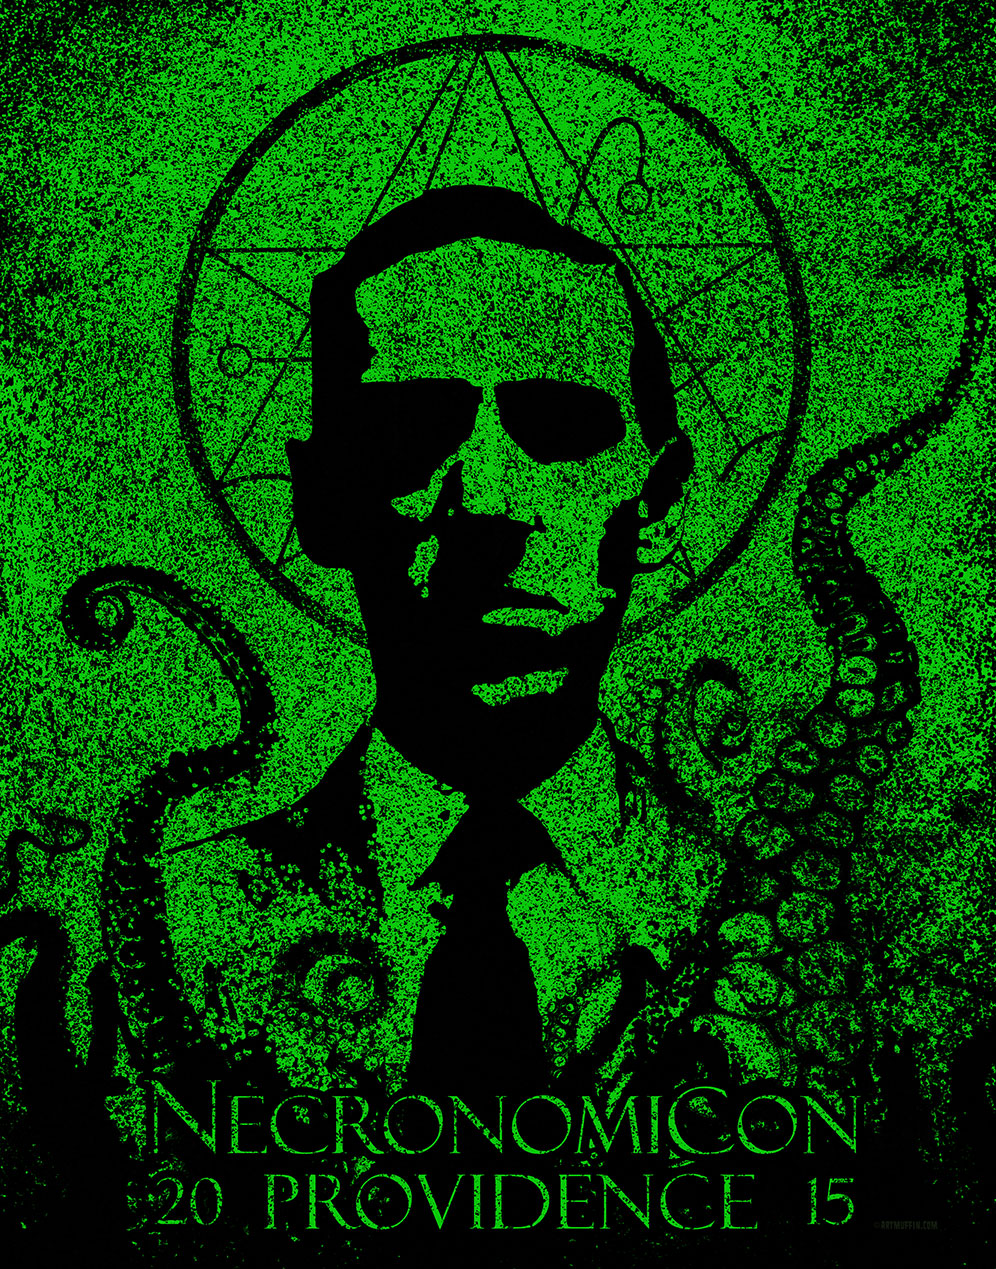 NecronomiCon-Providence 2015: H P  Lovecraft 125 Years